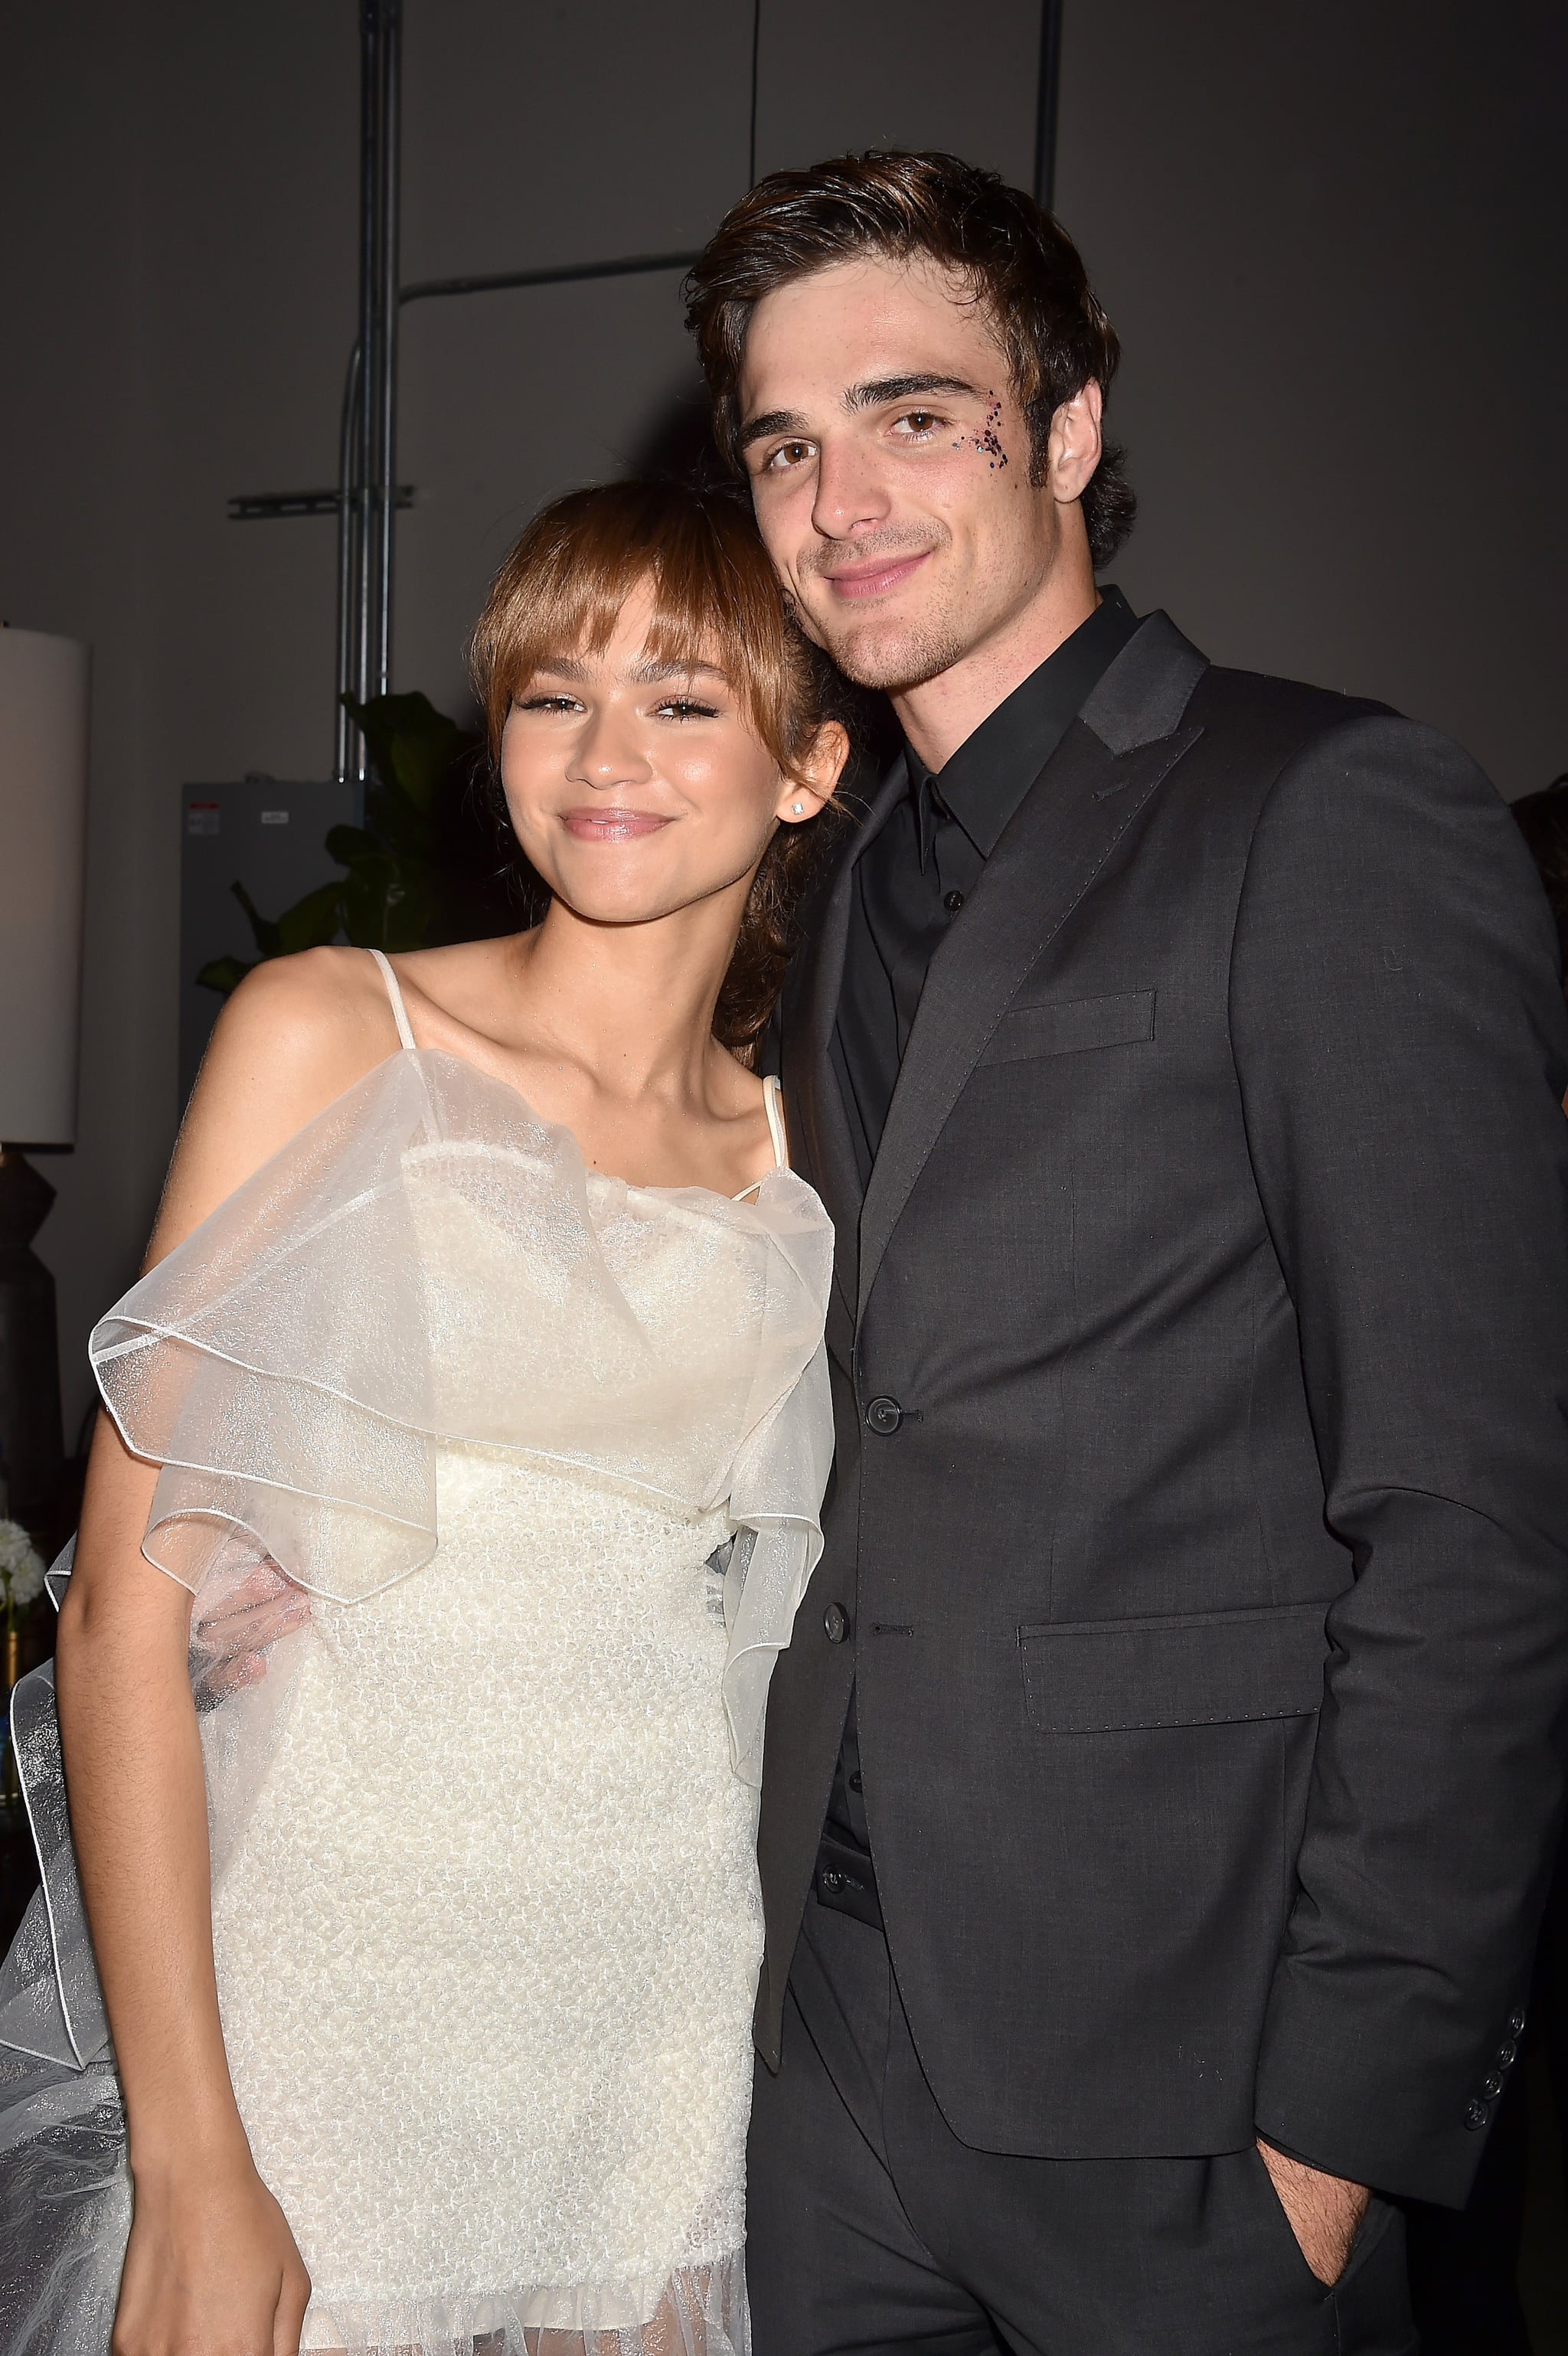 LOS ANGELES, CALIFORNIA - JUNE 04: Zendaya and Jacob Elordi attend HBO's